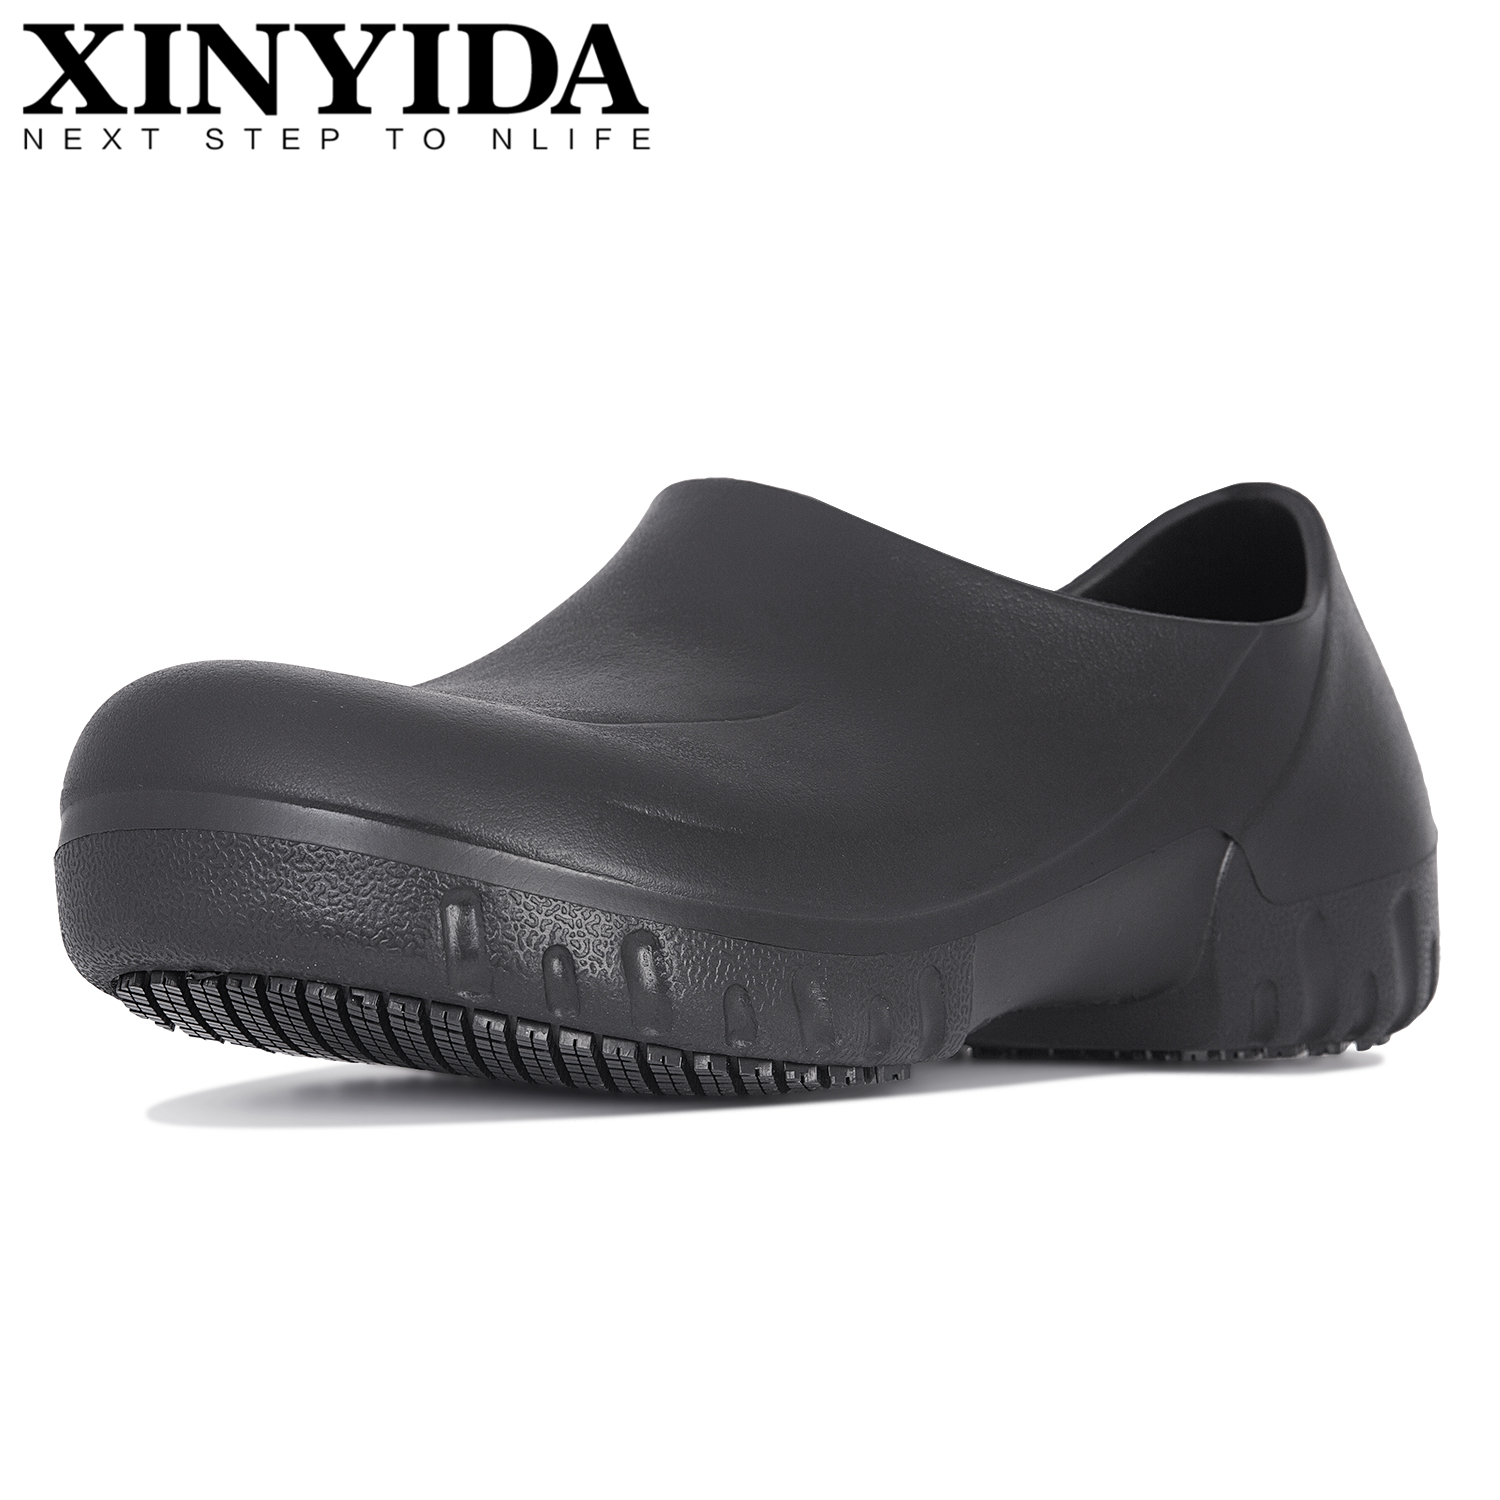 Hotel Kitchen Male Chef Shoes Non-slip Waterproof Oil-proof Working Shoes Breathable Resistant Cook Shoes Safety Clogs Slippers